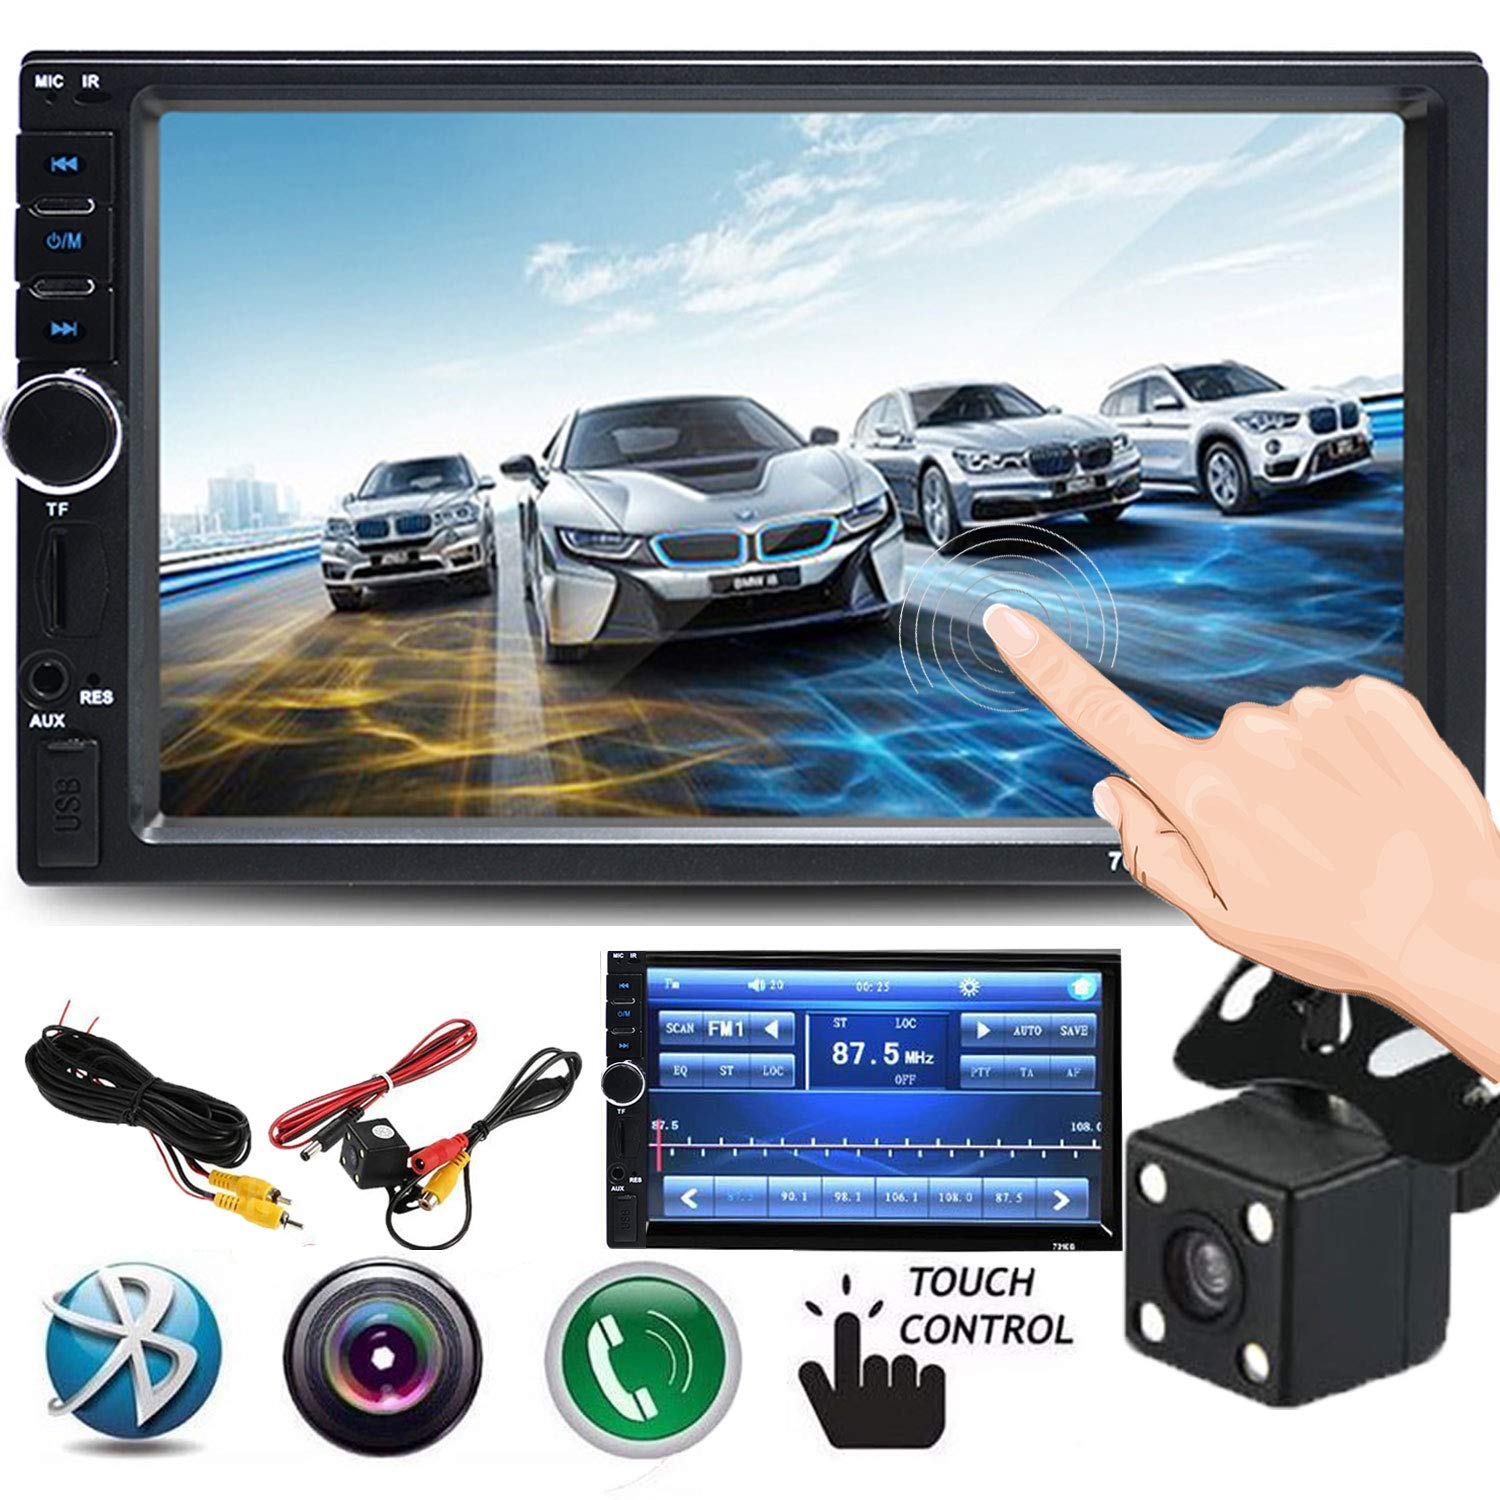 Cavogin Double Din Car Stereo, 7-Inch Touch Screen Car Radio MP3/MP5/FM Player Supports Bluetooth/USB/TF with Remote Control